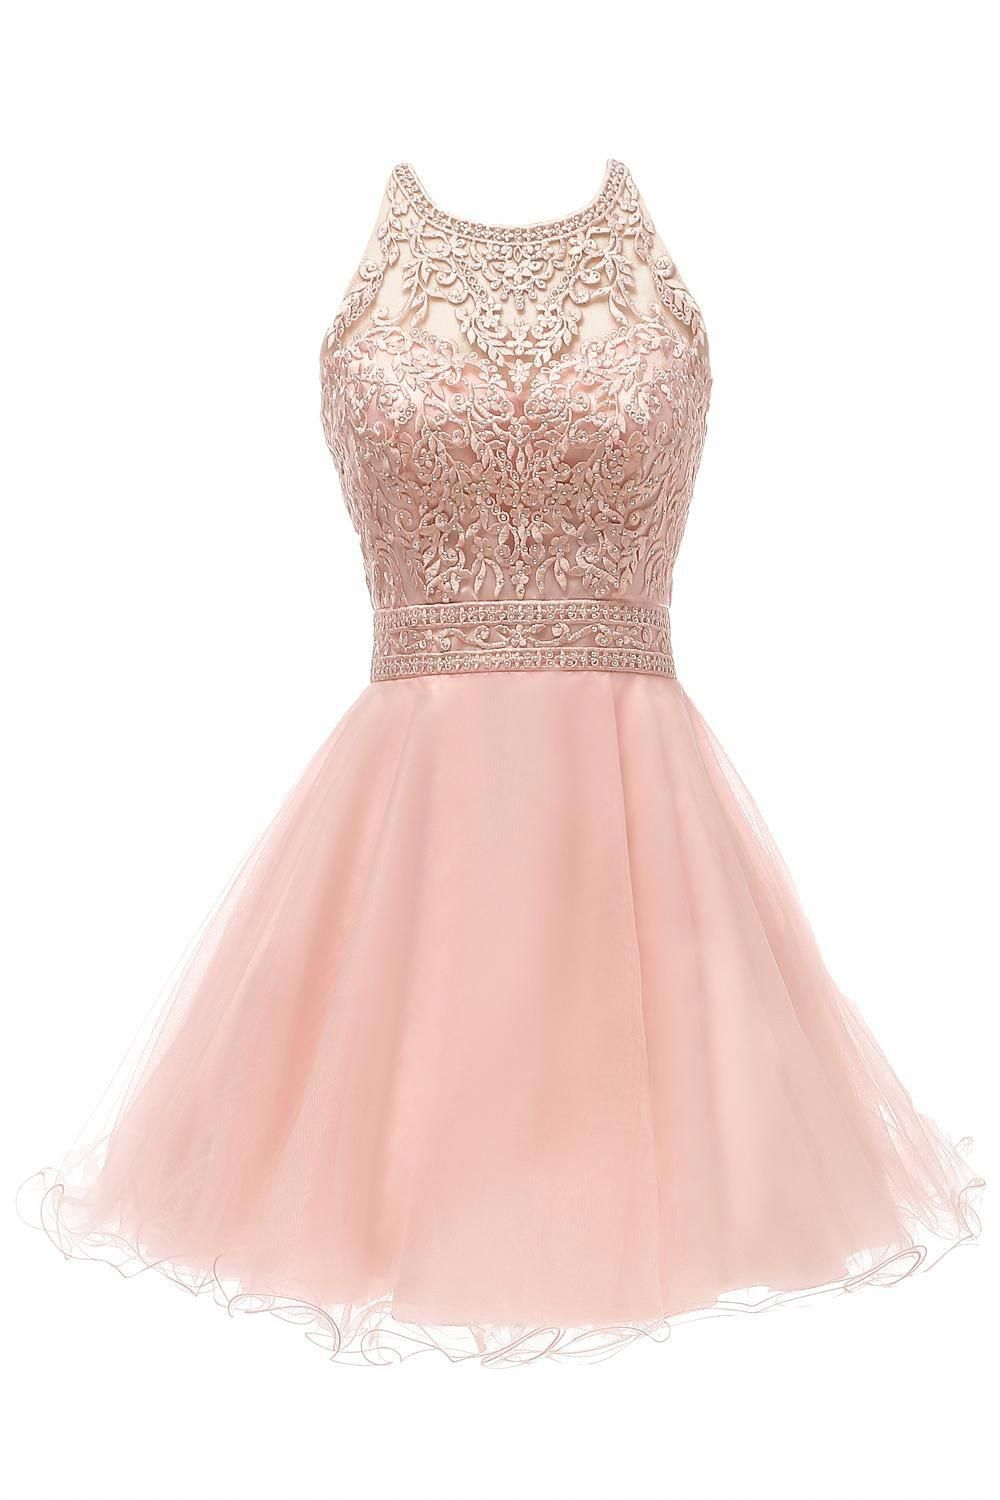 20 Blush Short Prom Dresses Halter Lace Appliques Beaded A Line